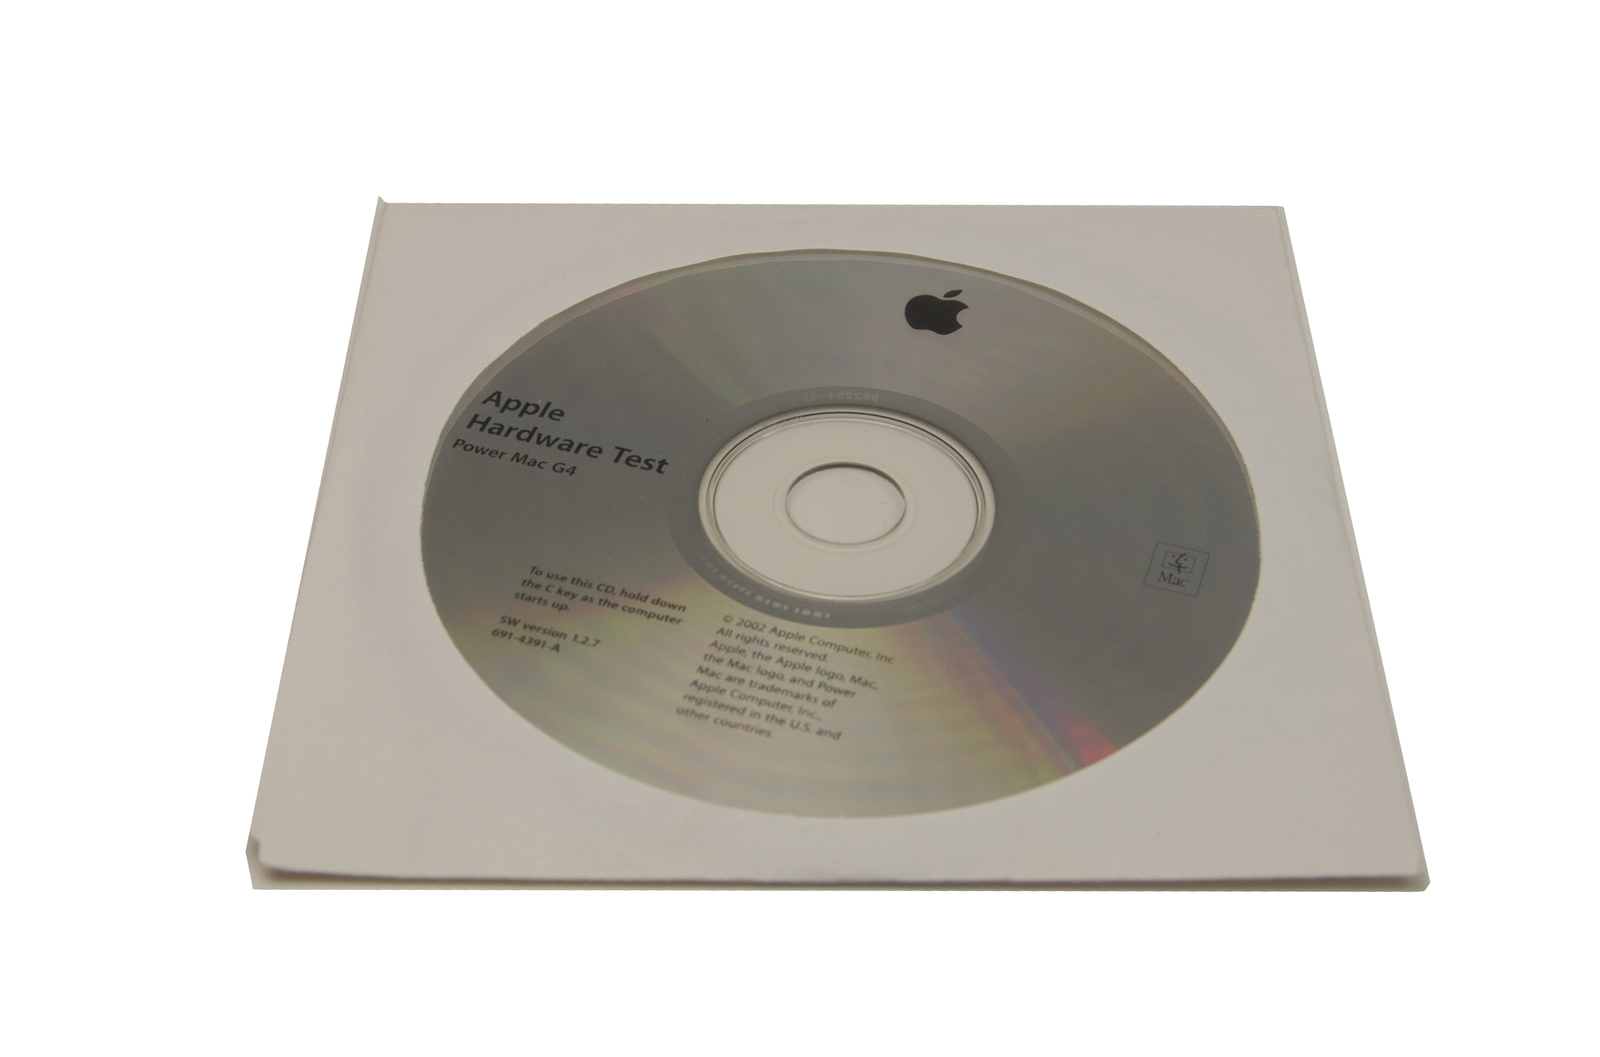 Apple Hardware Test 1.2.7  CD for Power Mac G4 (2002)